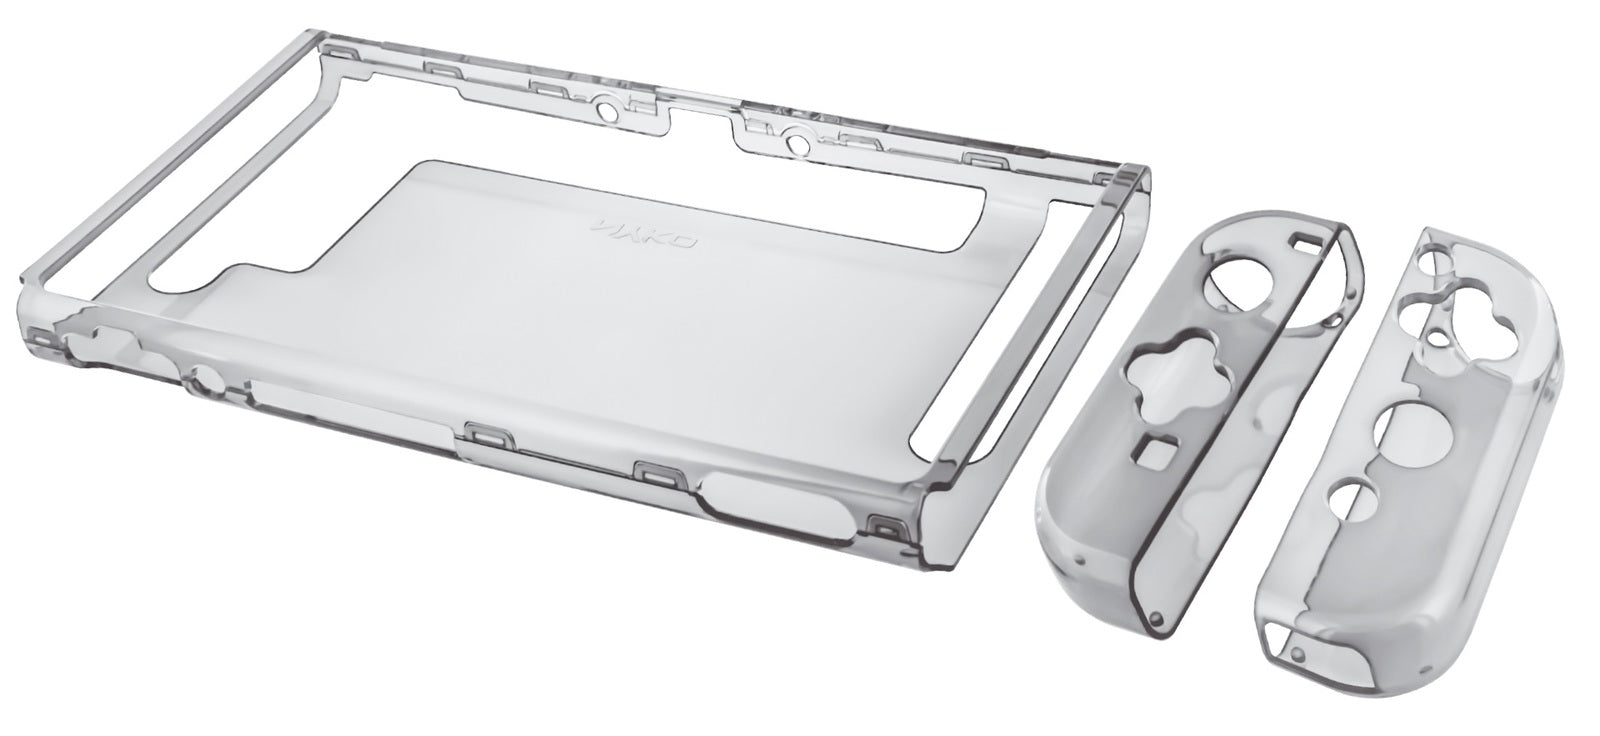 Nyko Thin Case (Clear) for Nintendo Switch - Nintendo Switch